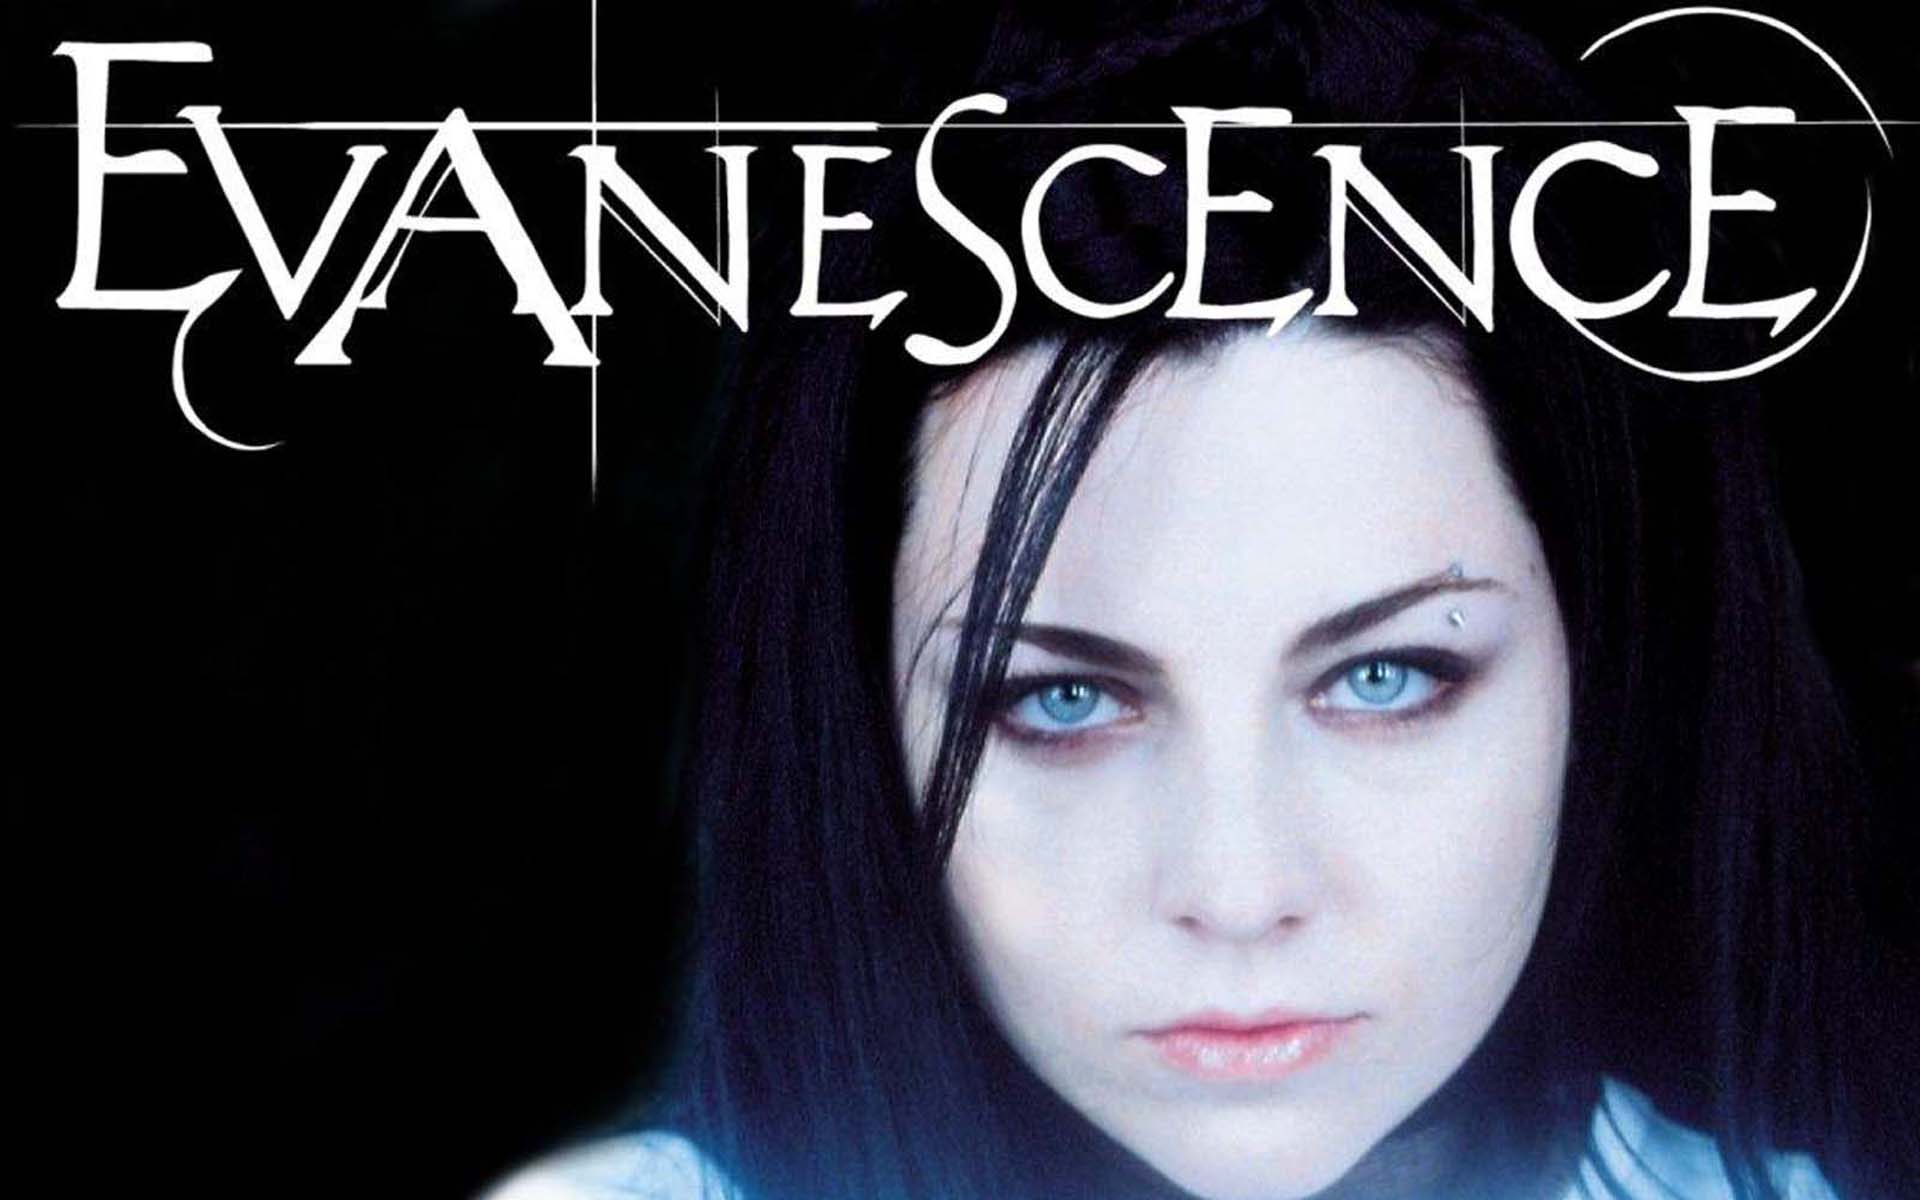 Evanescence Wallpaper 1920x1200 Wallpapers 1920x1200 Wallpapers 1920x1200